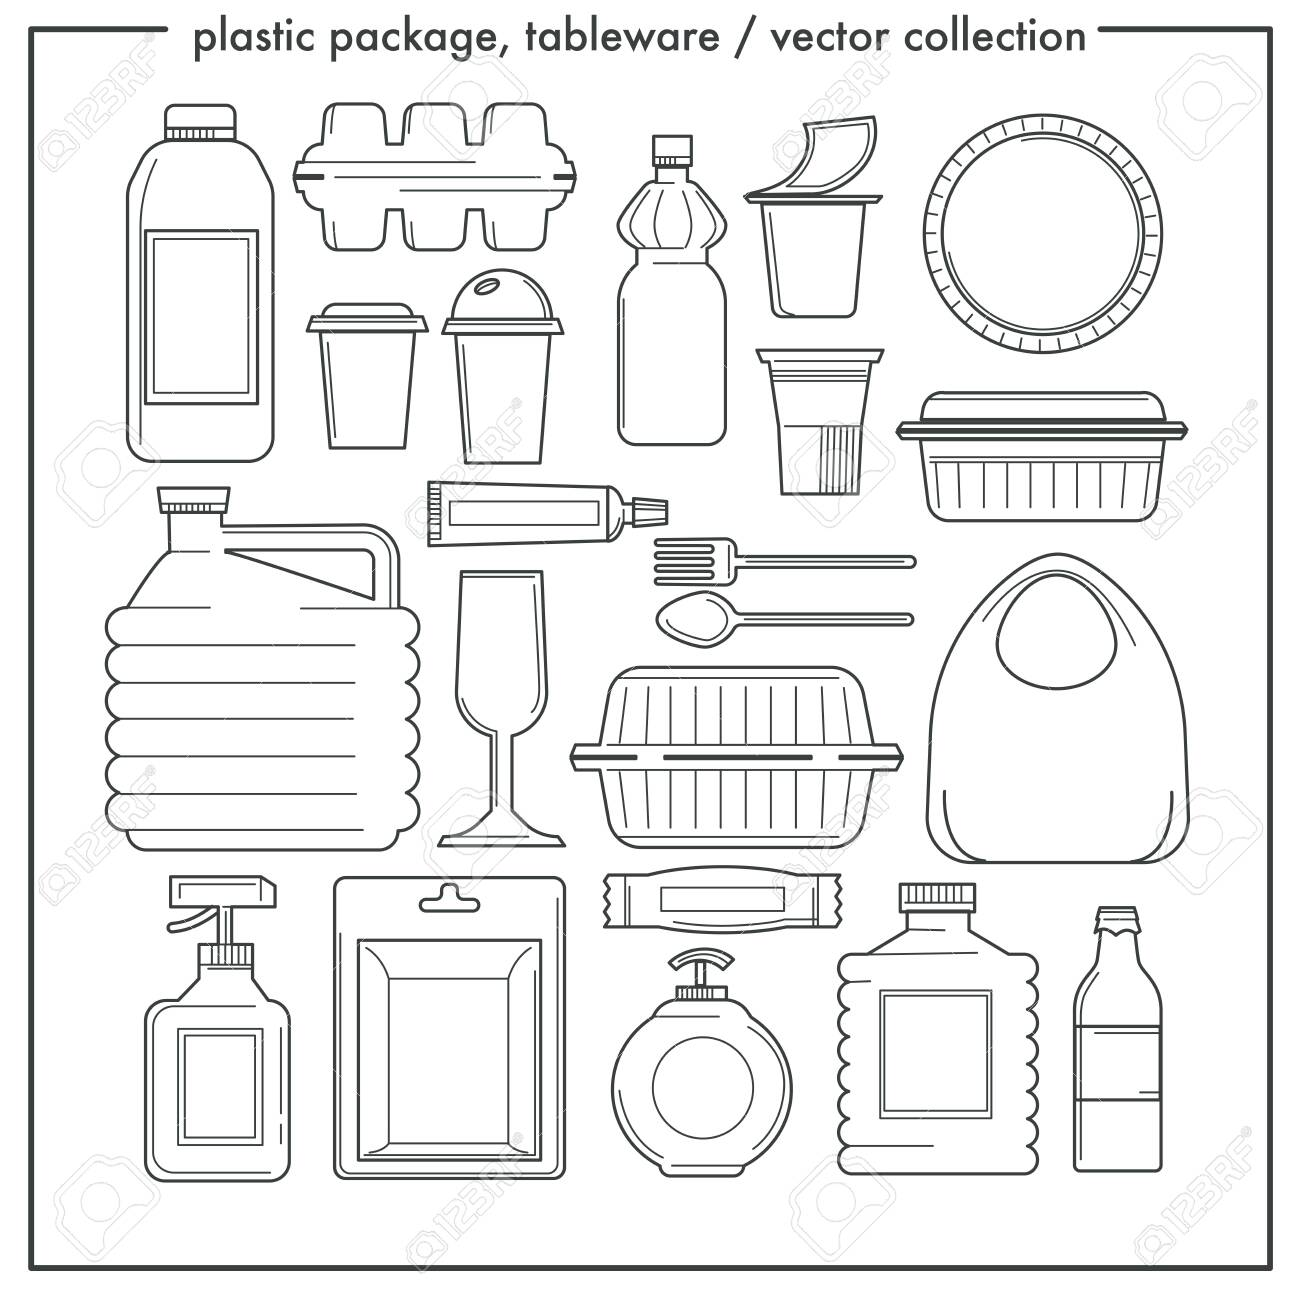 Disposable tableware and plastic packaging isolated outline icons - 129761938